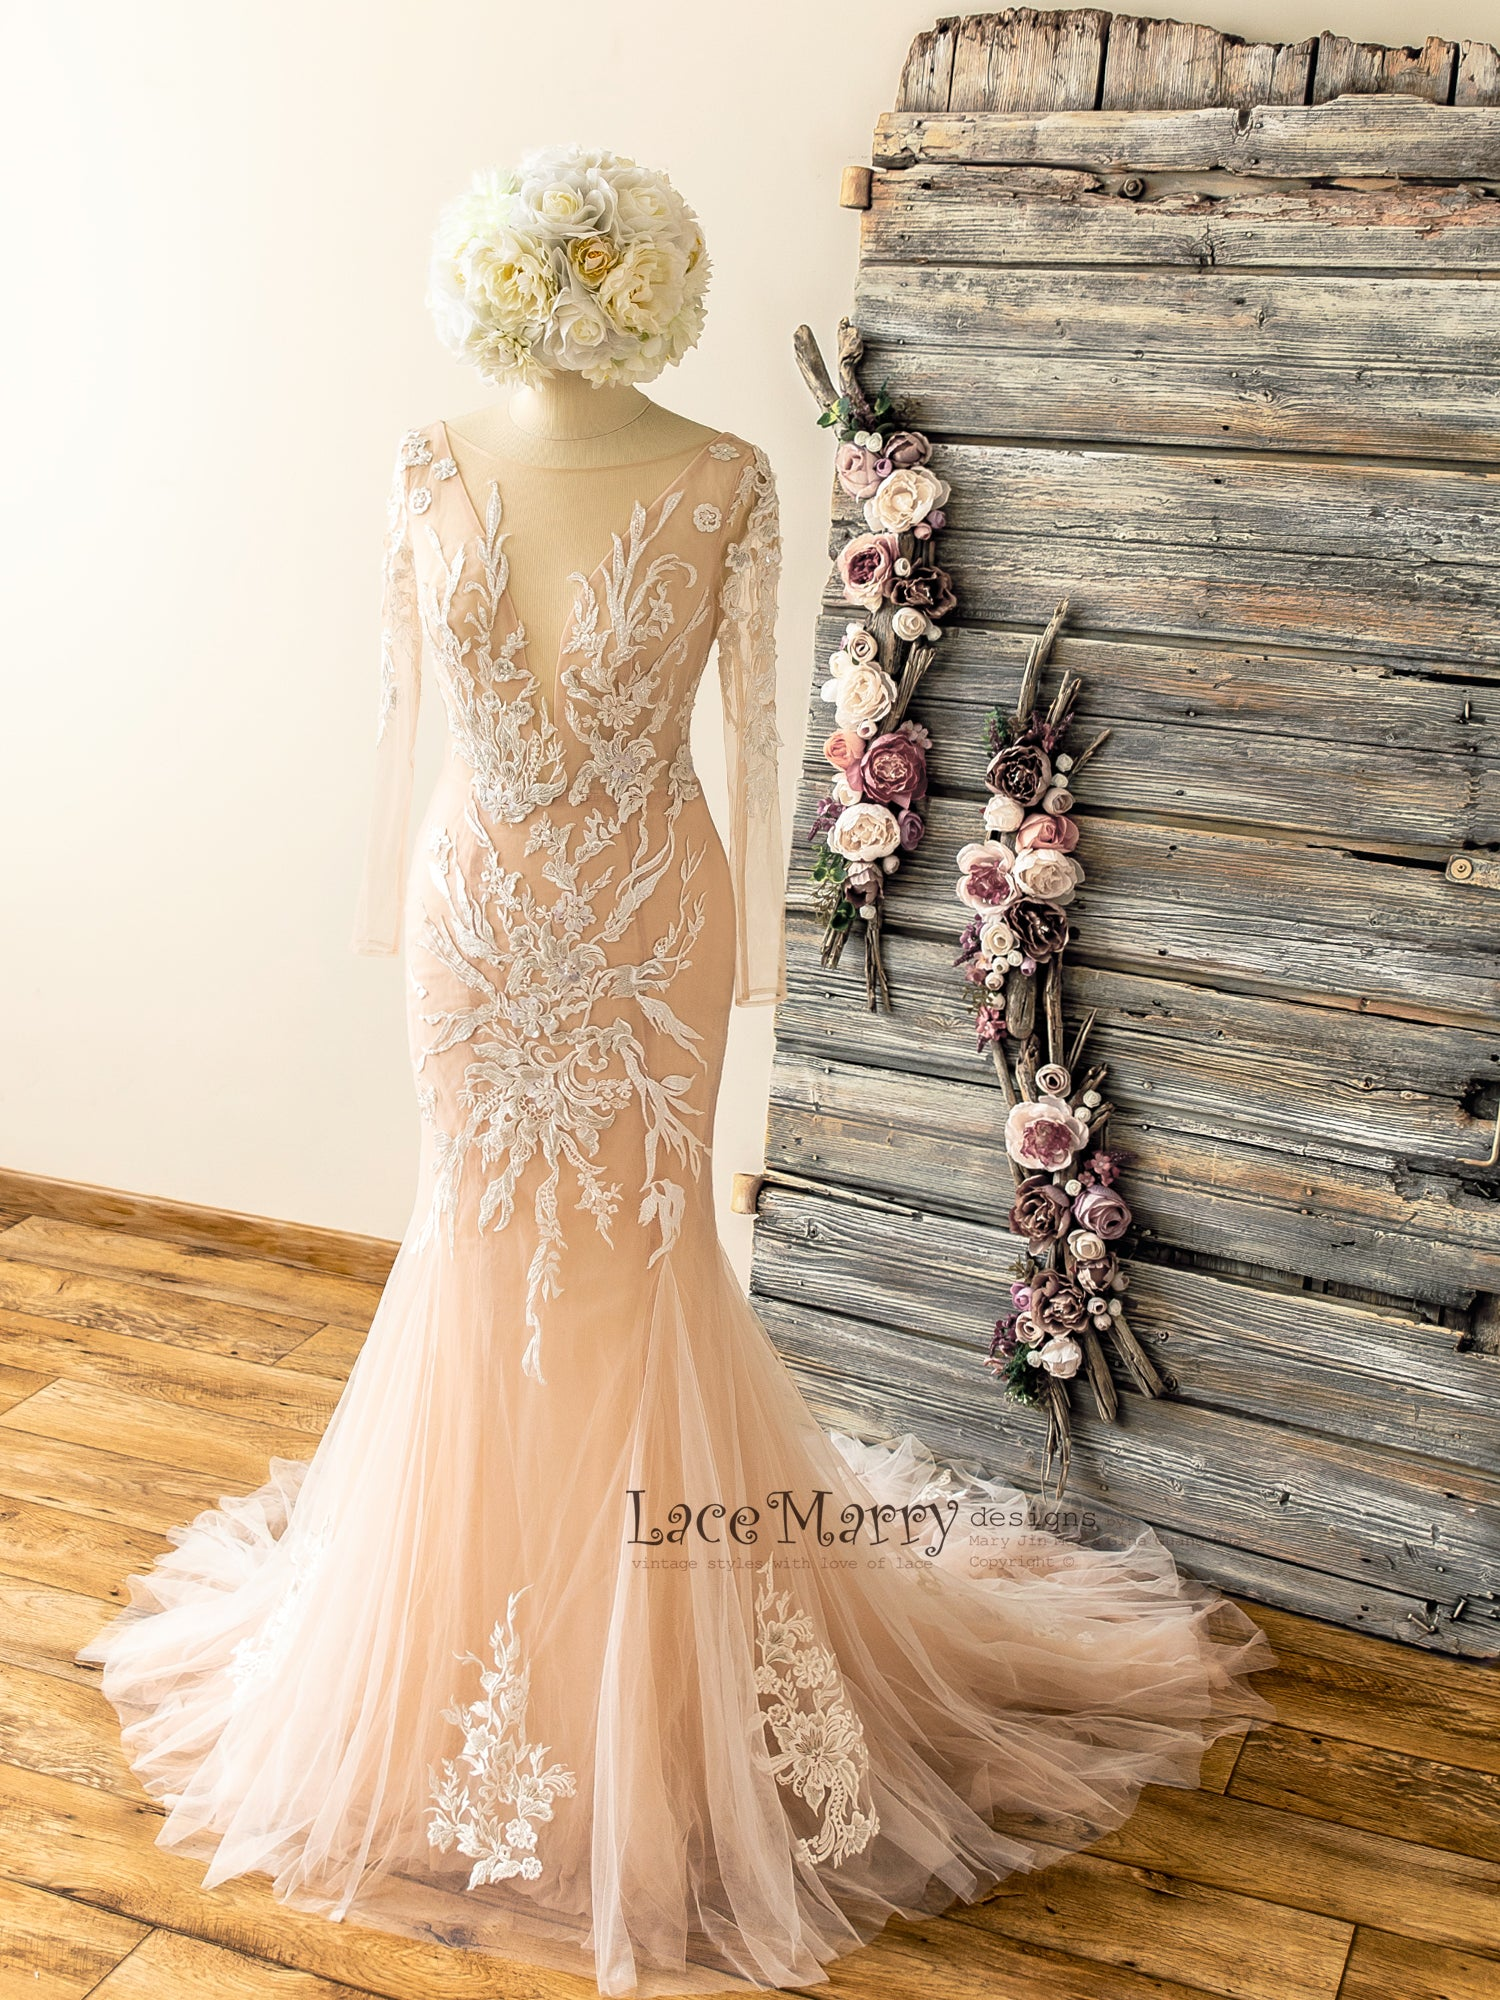 Amazing Lace Wedding Dress with Handmade Beading and Long Sleeves